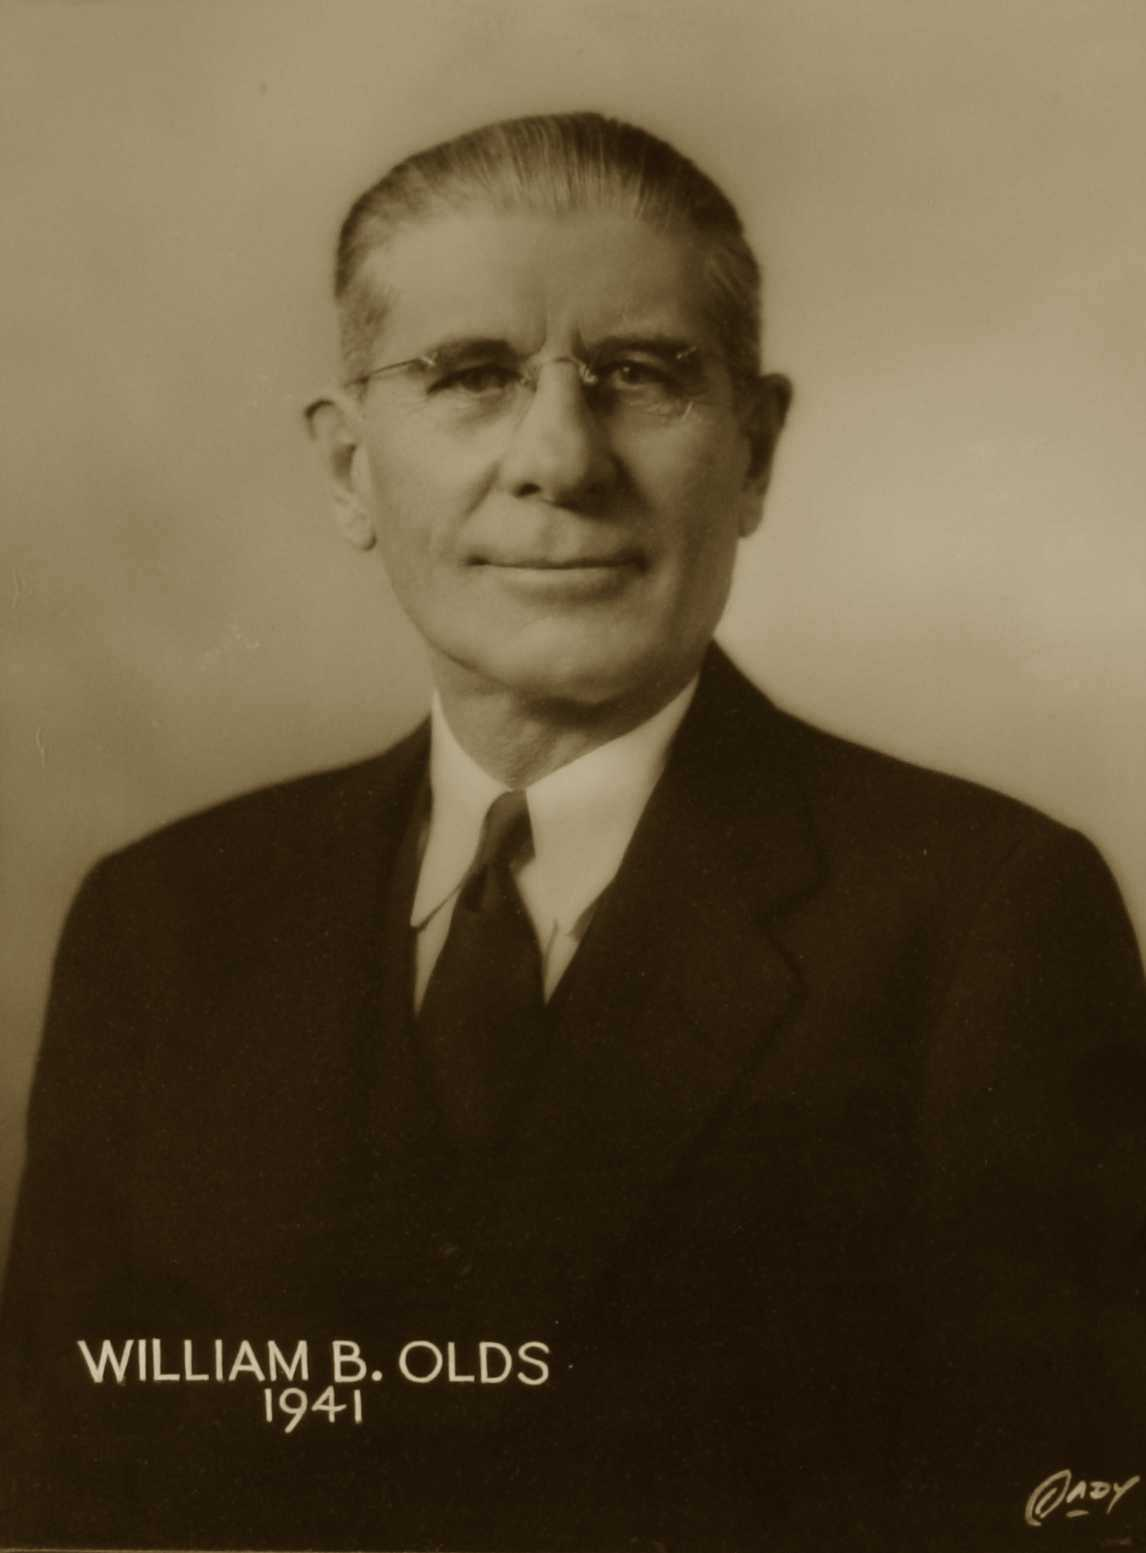 William B. Olds, 1941